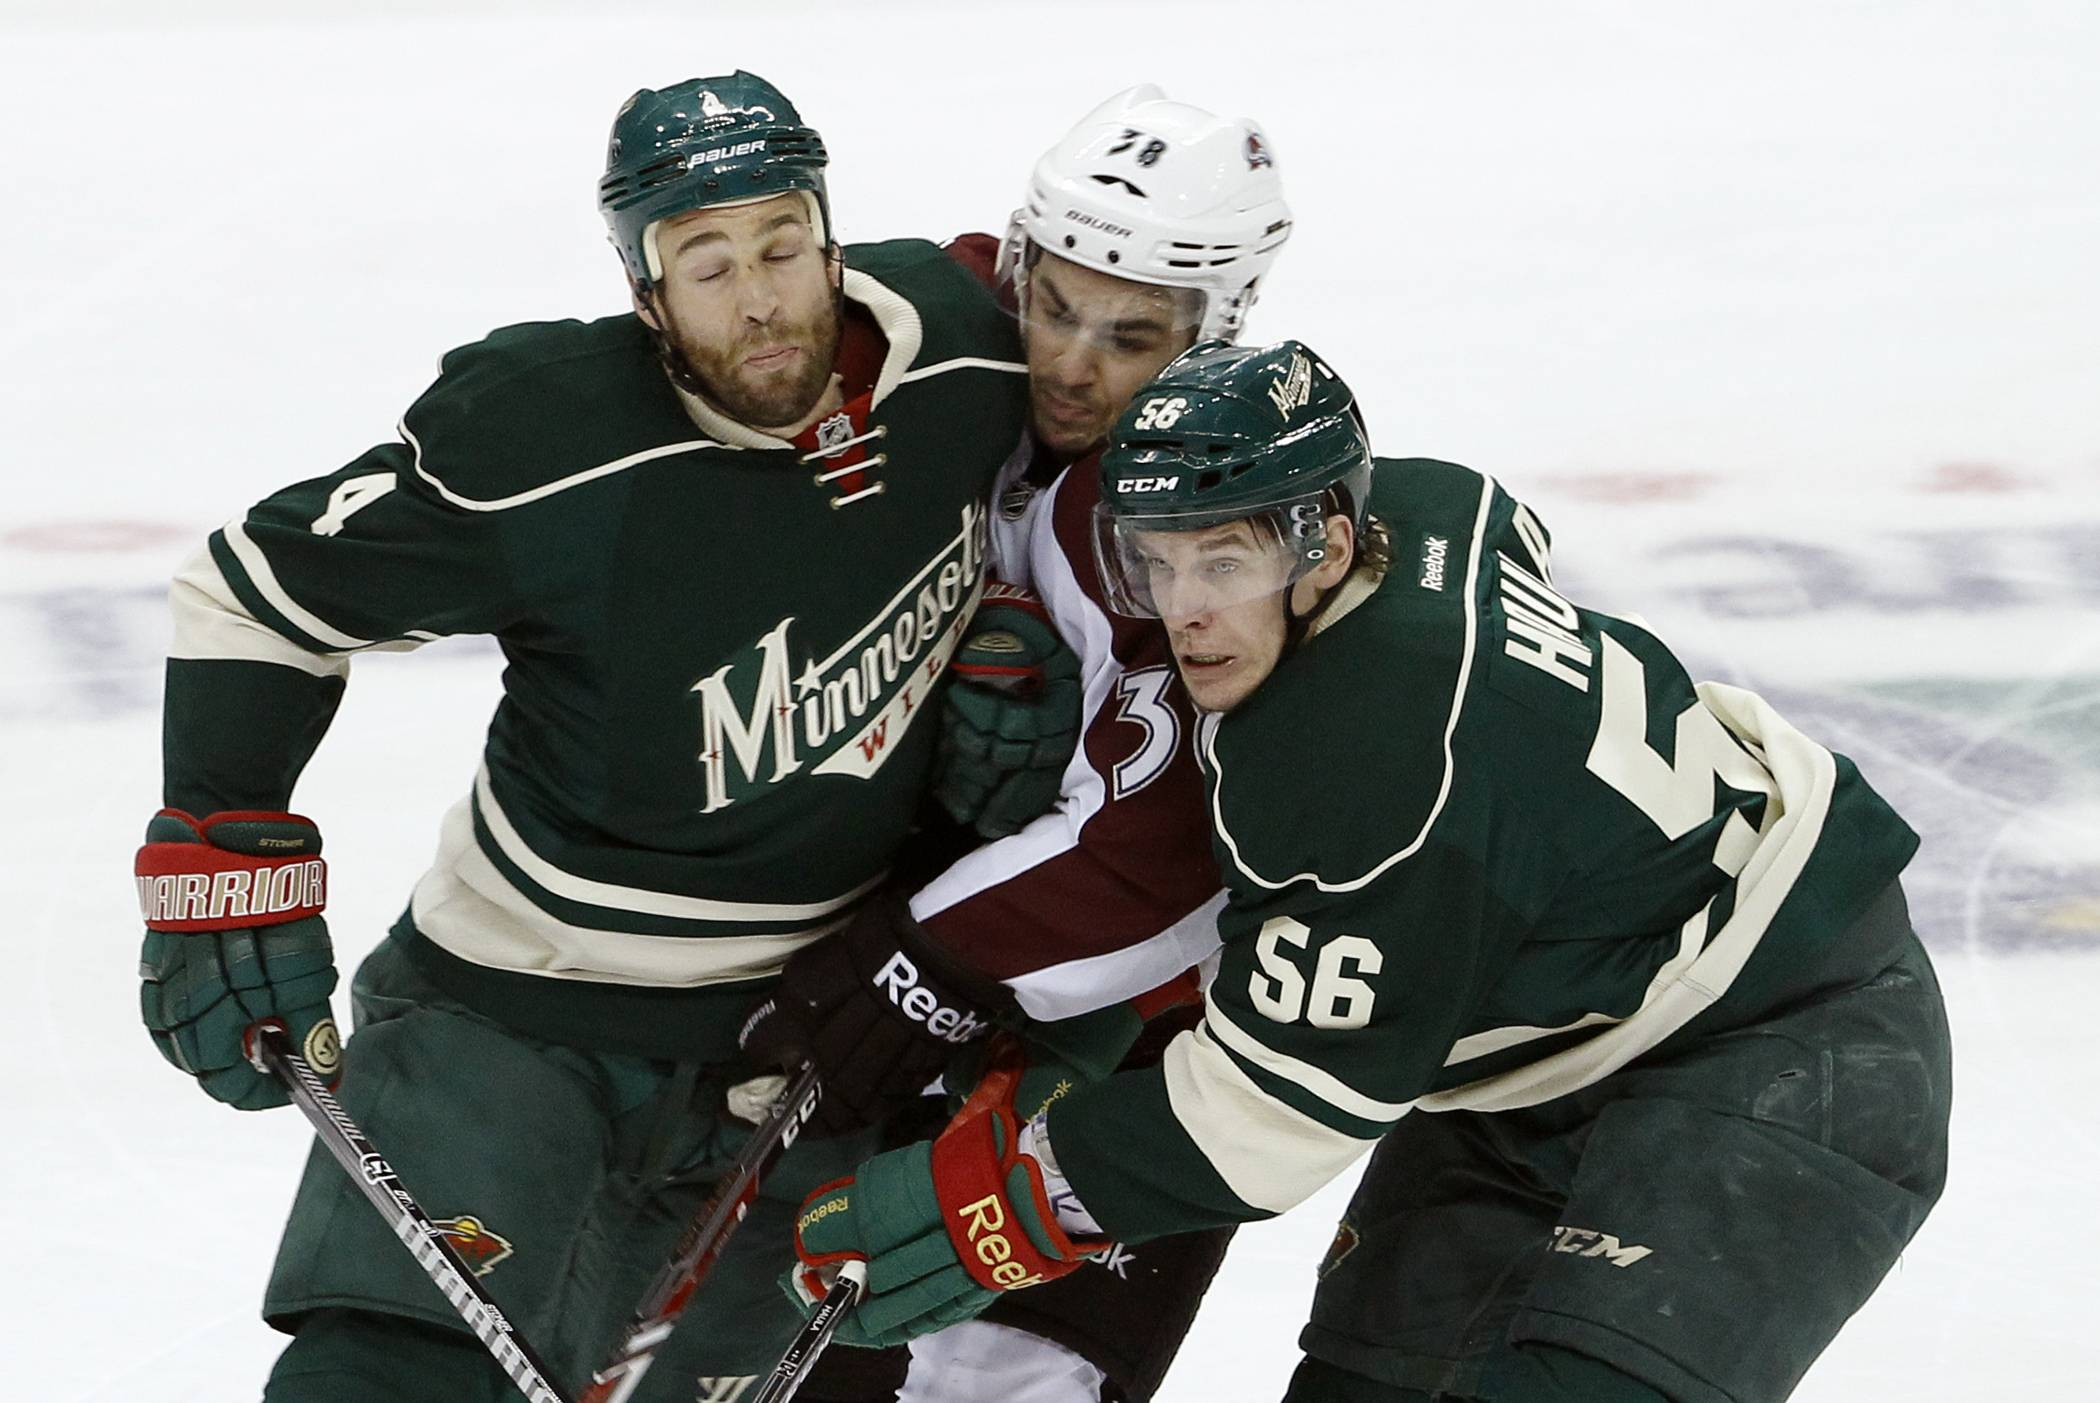 Colorado Avalanche center Joey Hishon is sandwiched between Minnesota Wild defenseman Clayton Stoner, left, and left wing Erik Haula (56), of Finland, during the first period of Game 4 of an NHL hockey first-round playoff series in St. Paul, Minn., Thursday, April 24, 2014.